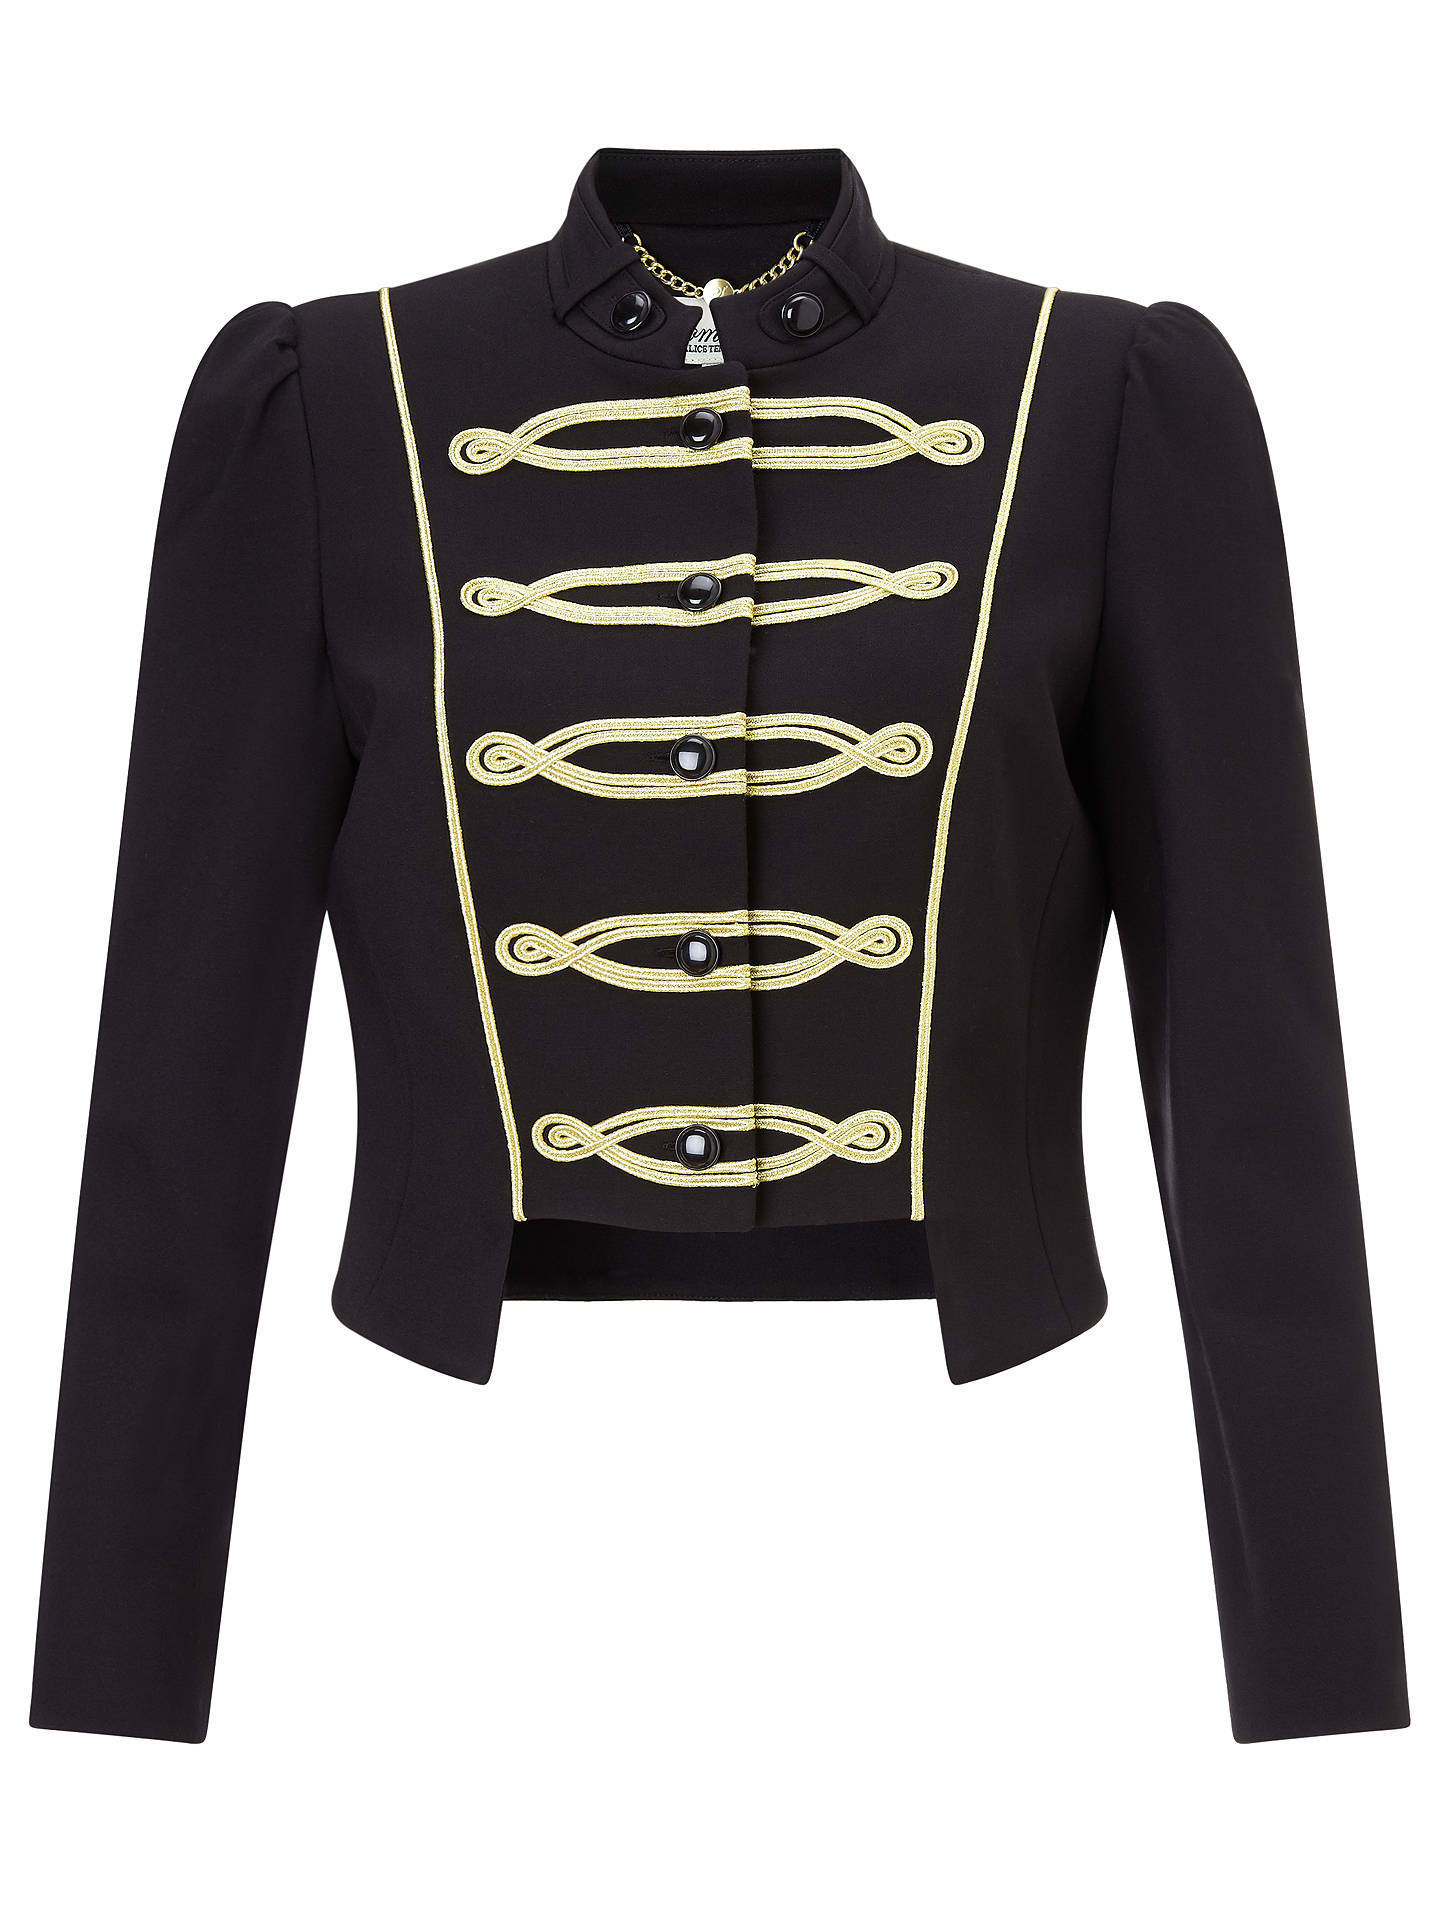 BuySomerset by Alice Temperley Military Jacket 906c4d35b